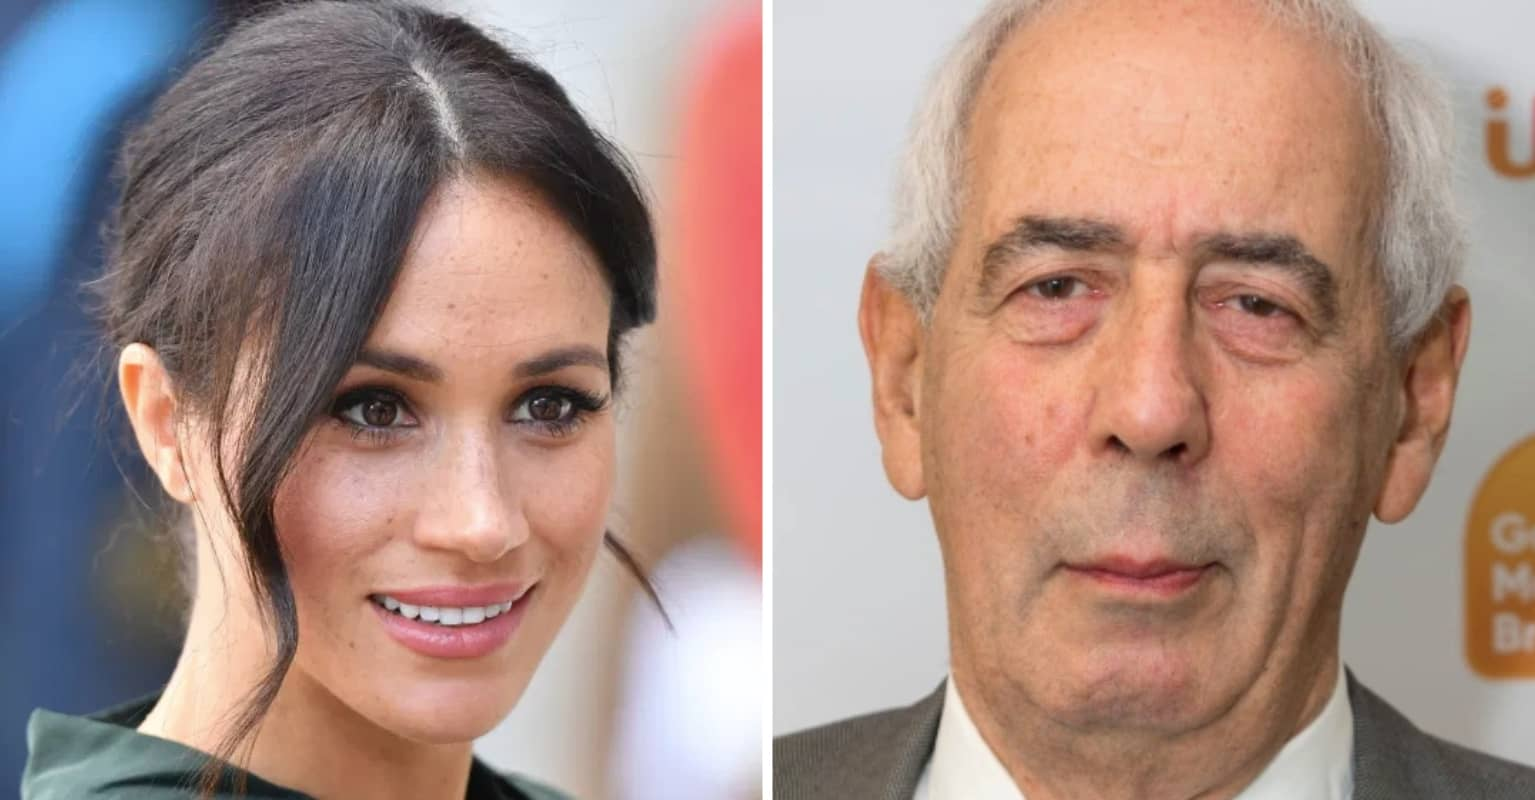 Famous biographer set to write unauthorised Meghan Markle book she will 'dread'